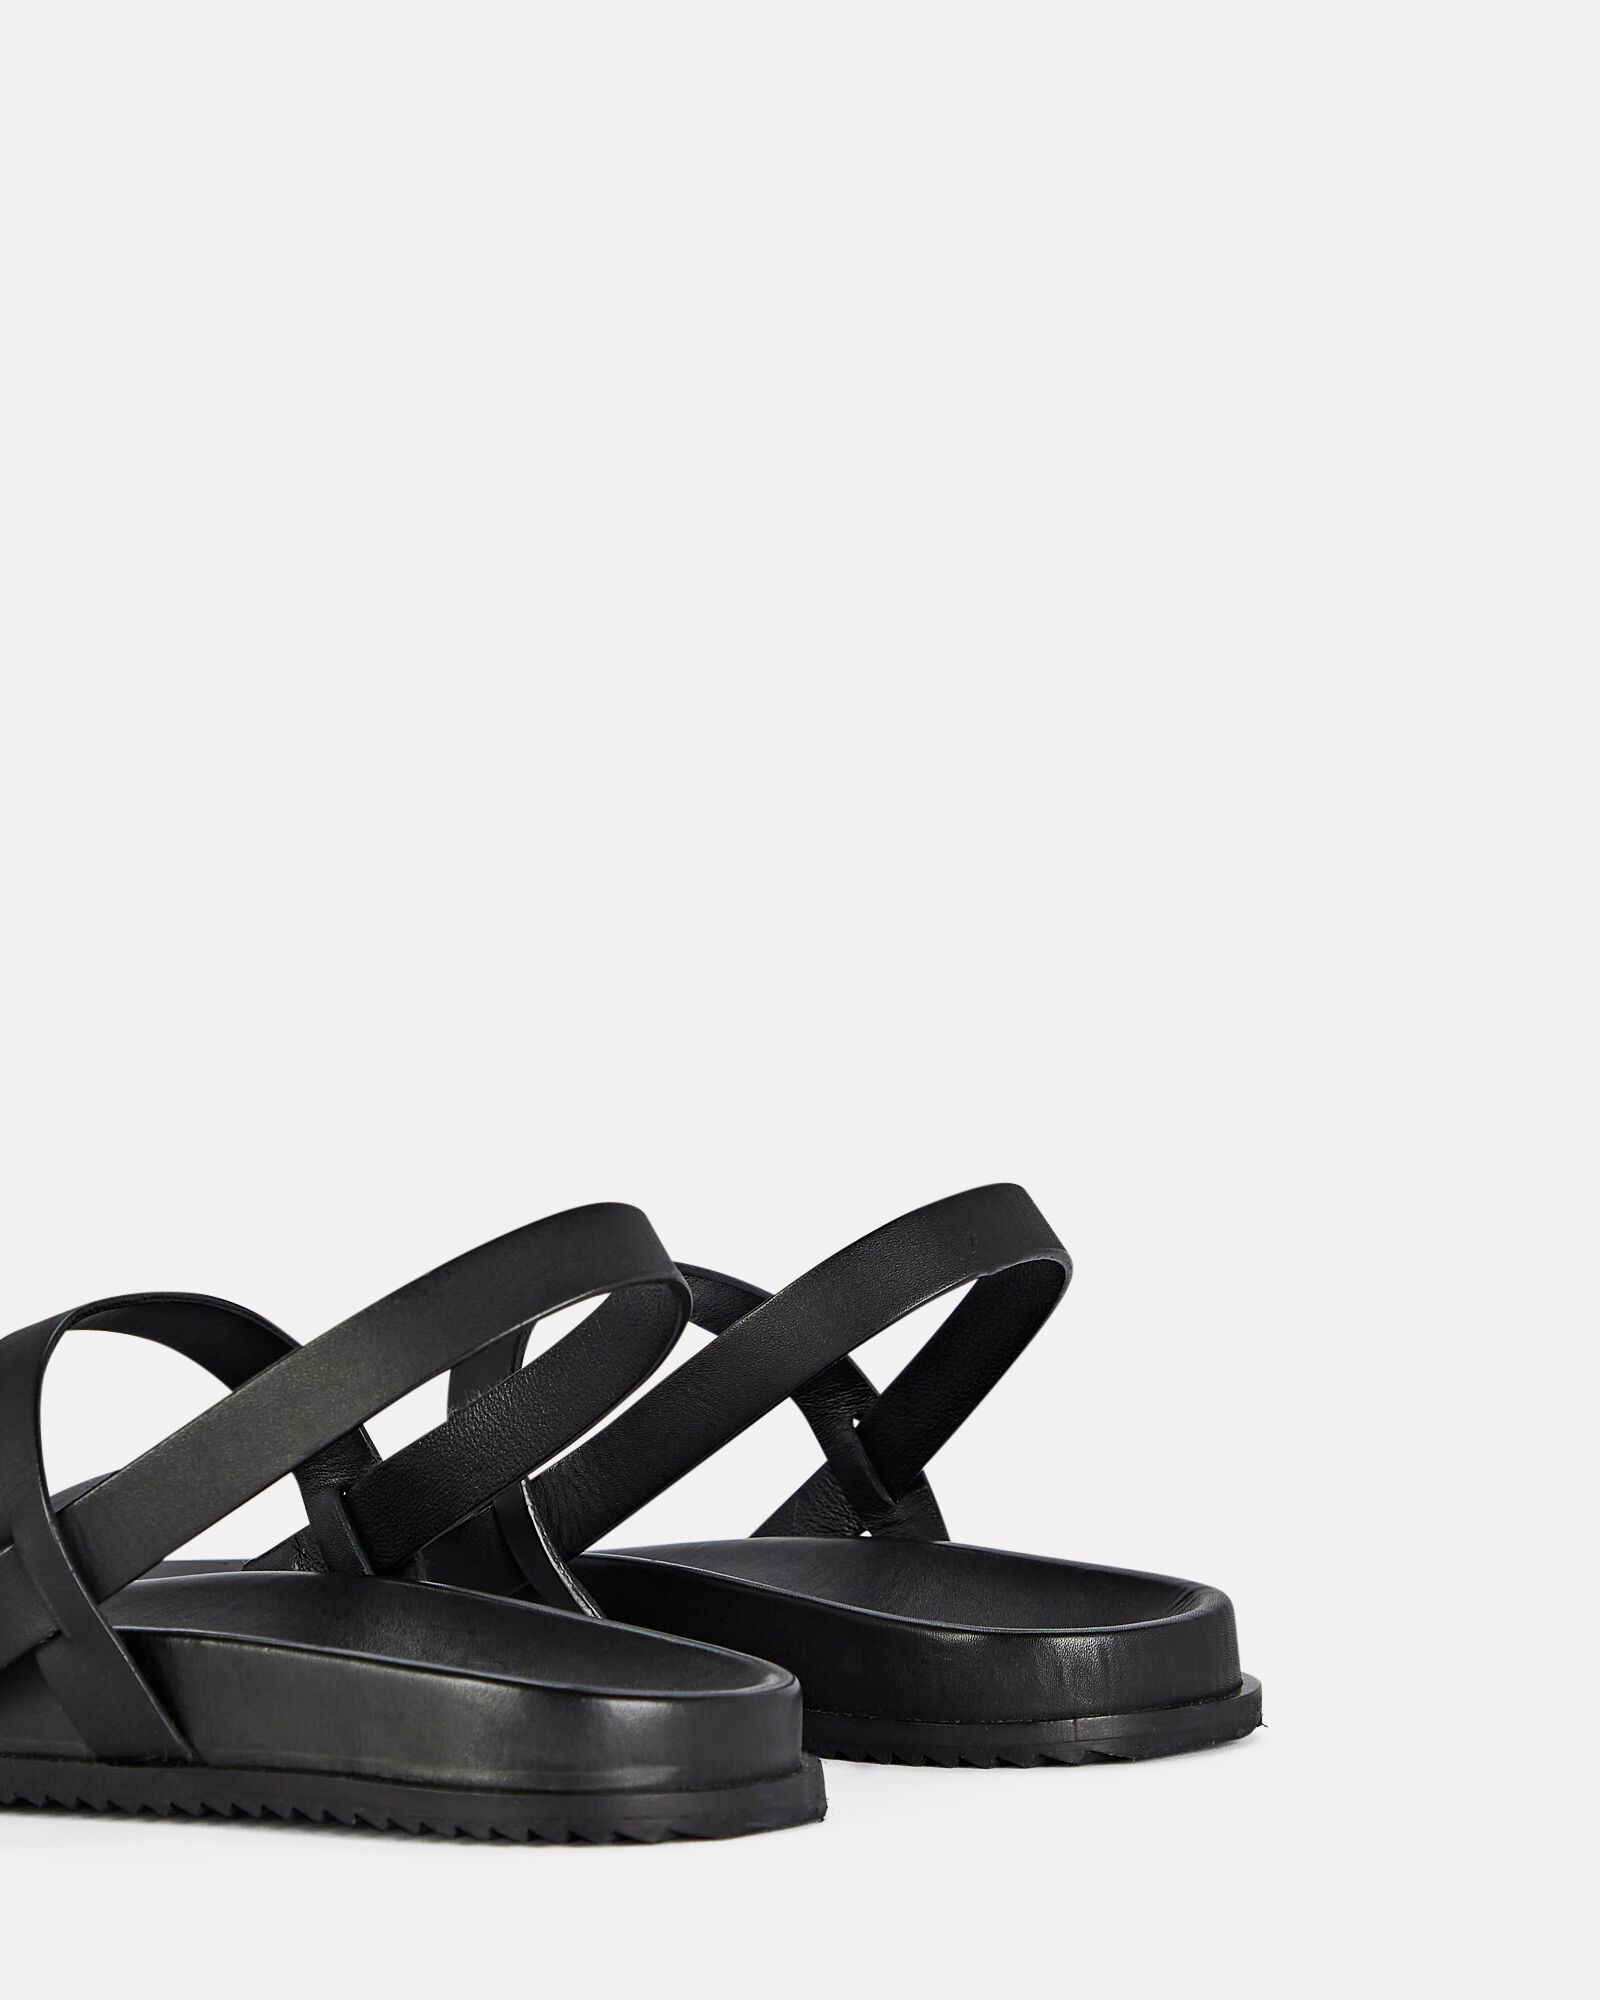 Gio Slingback Leather Flat Sandals, BLACK, hi-res